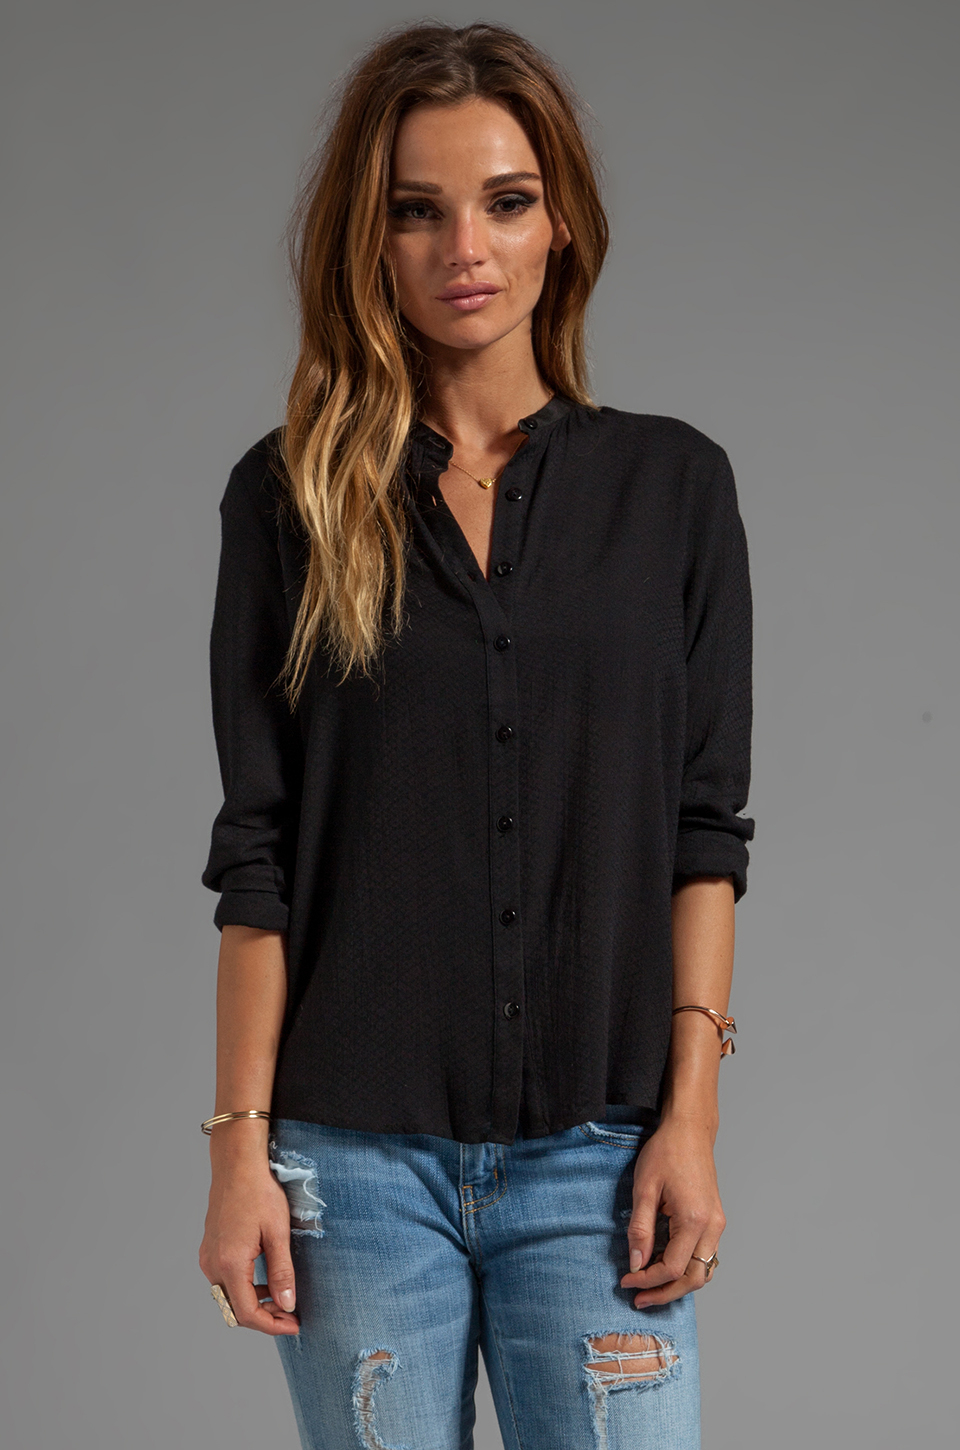 Neuw Salome Button Up Blouse in Black in Black | Lyst